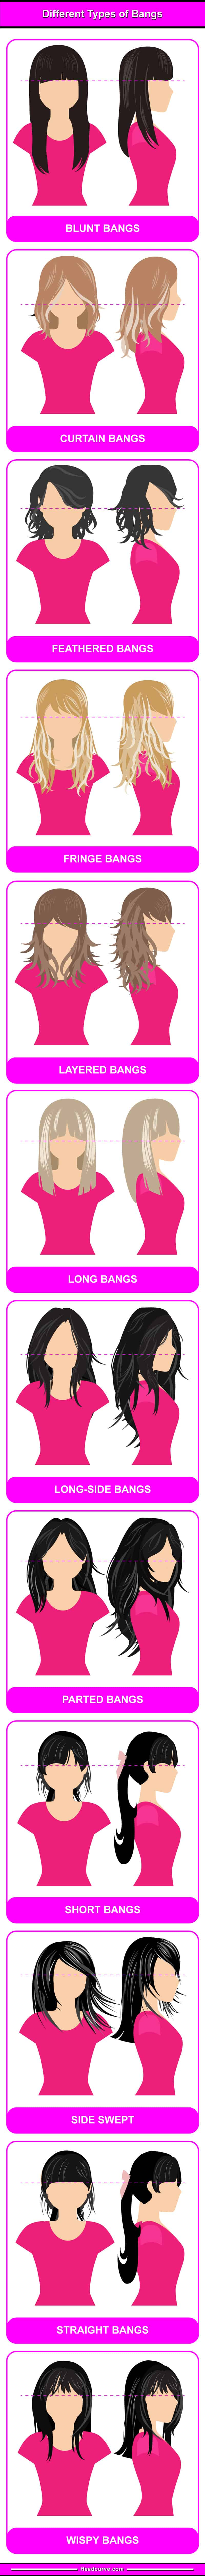 Chart setting out the different types of bangs for women